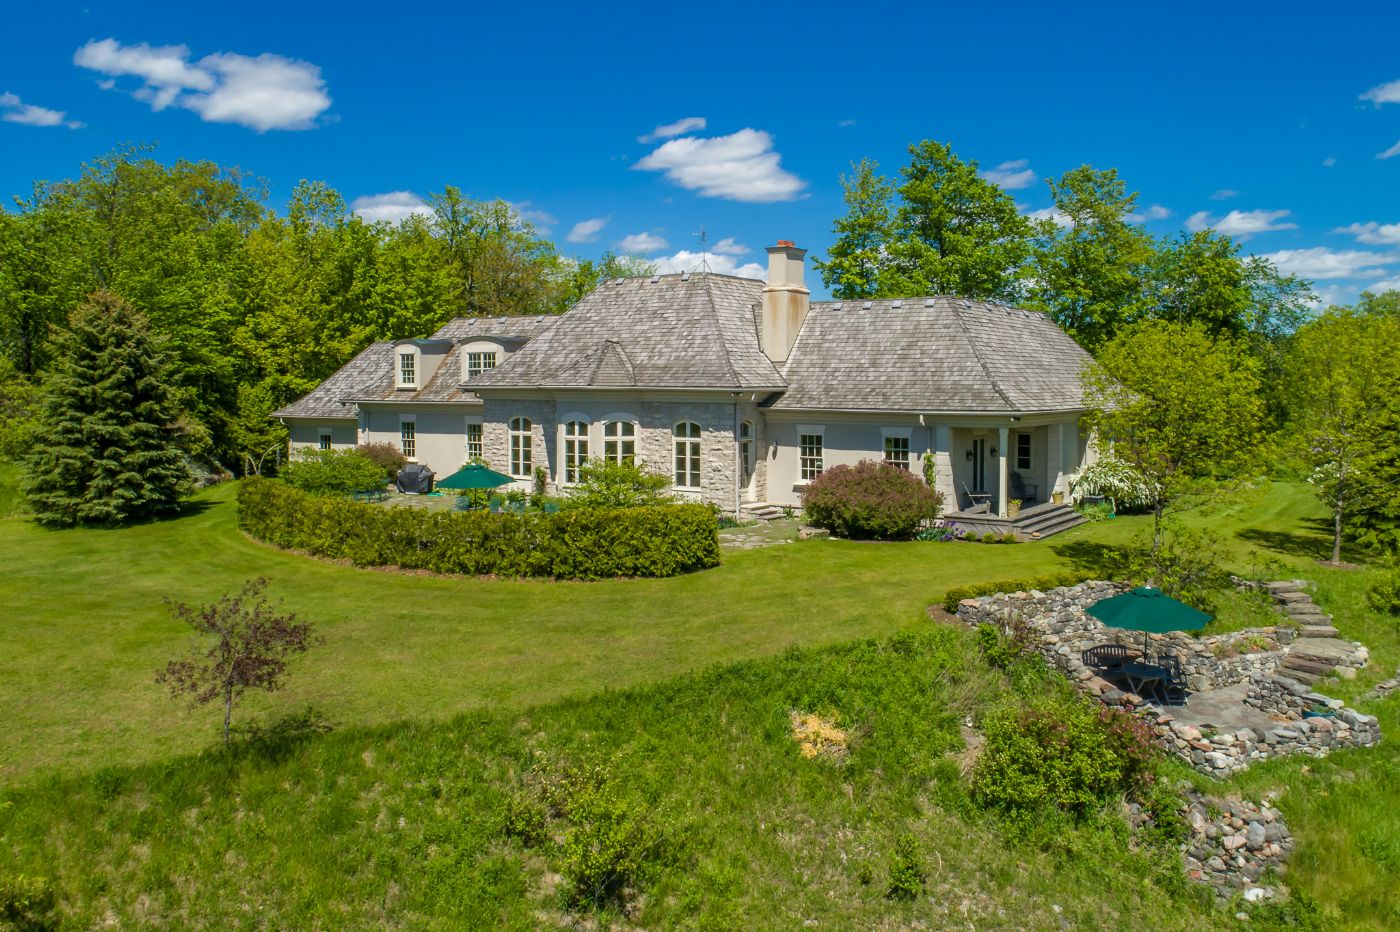 Mccasey design belfountain caledon country homes luxury for Luxury country homes